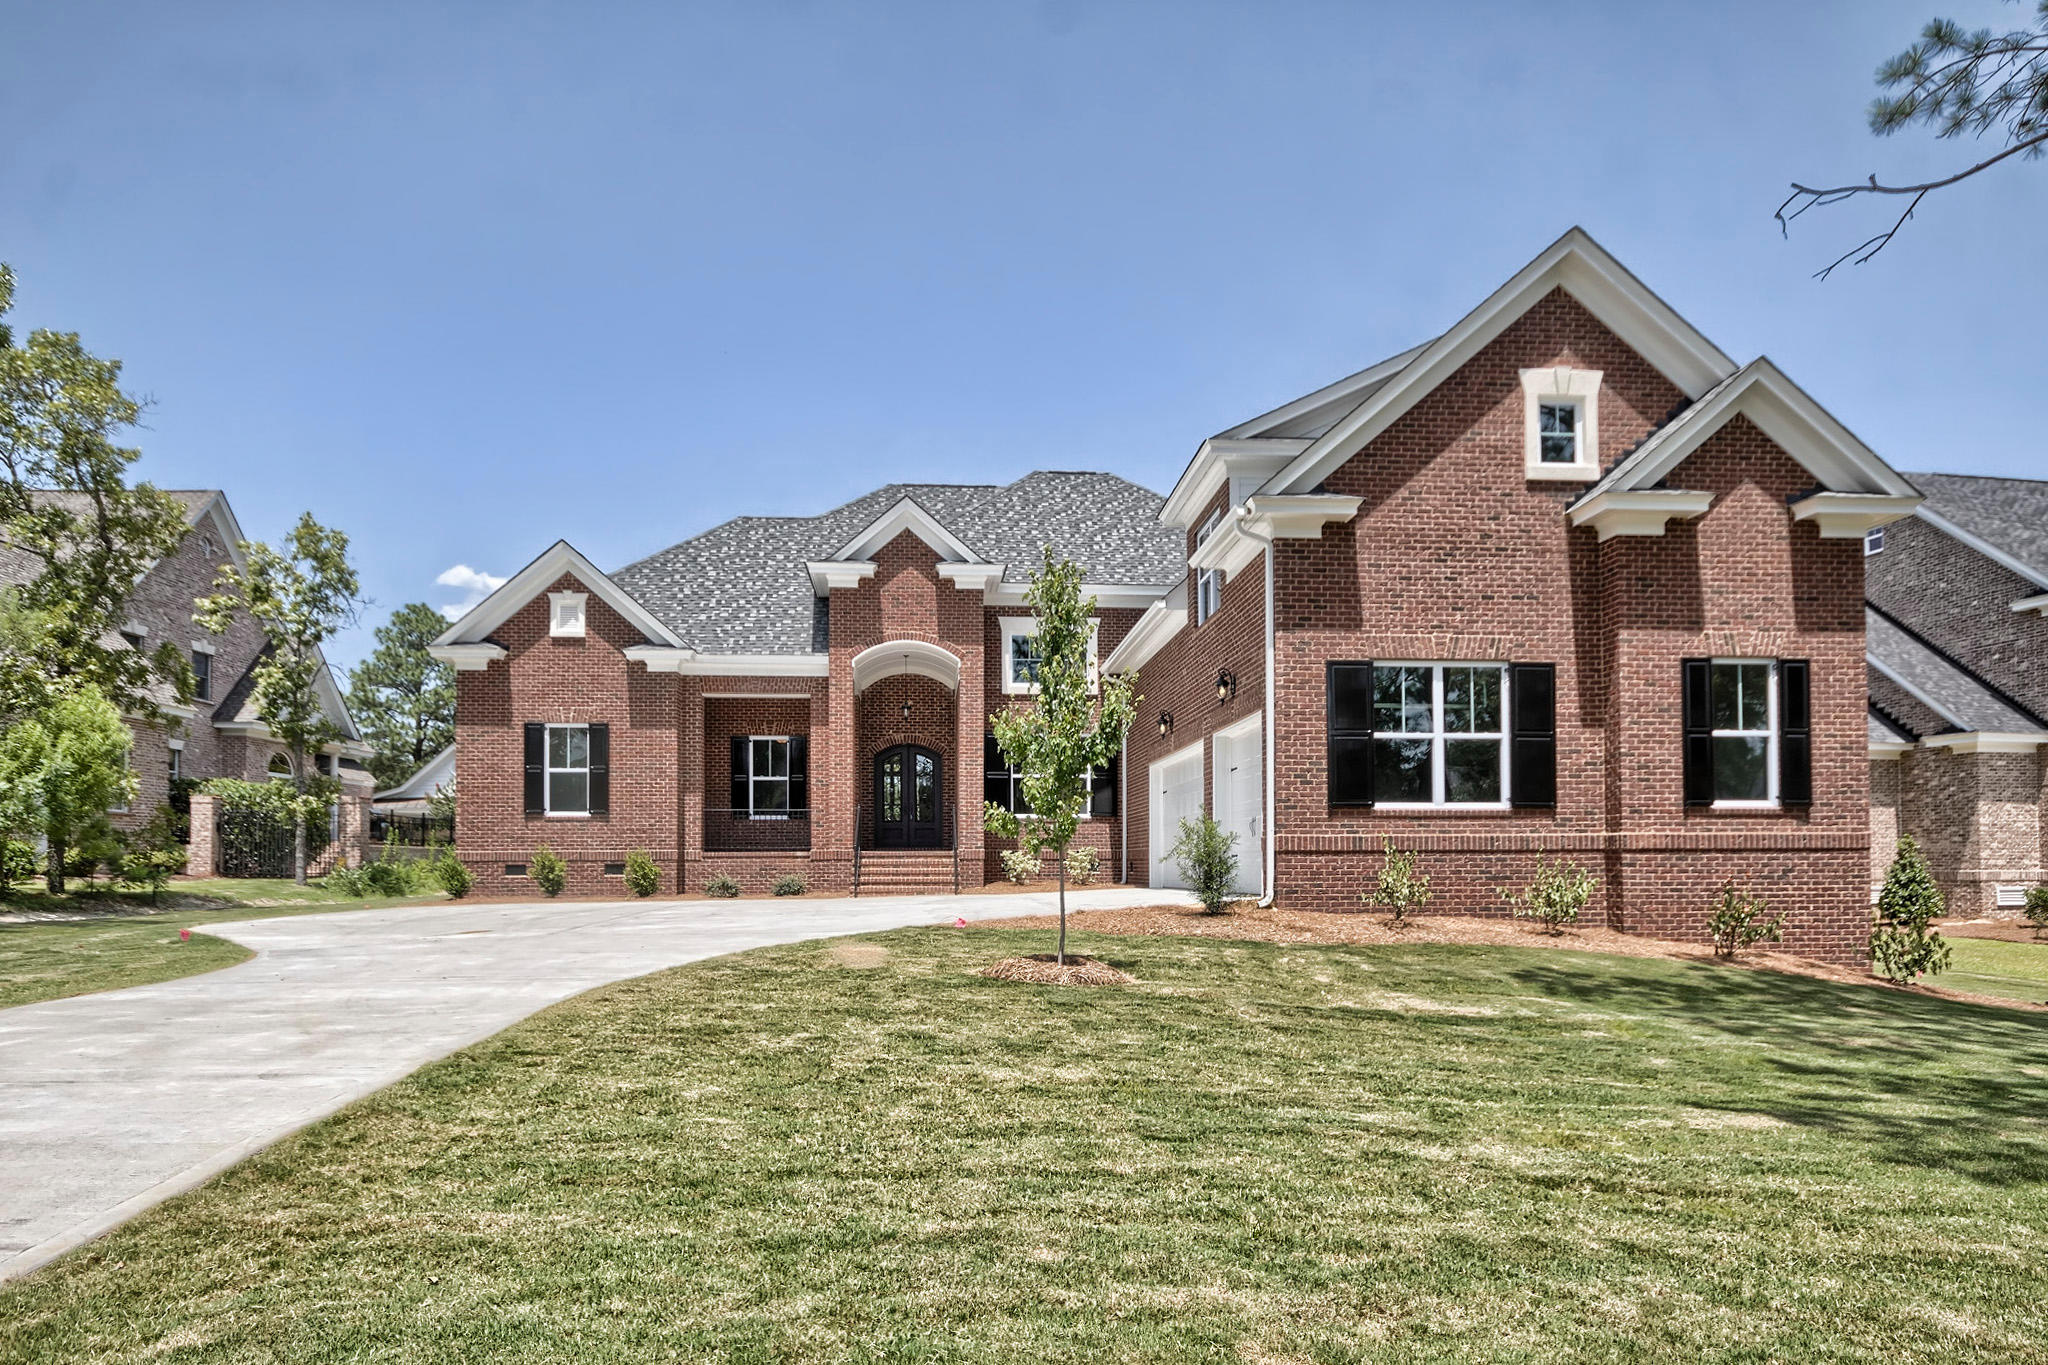 Woodcreek Farms Luxury Homes Executive Construction Homes image 20